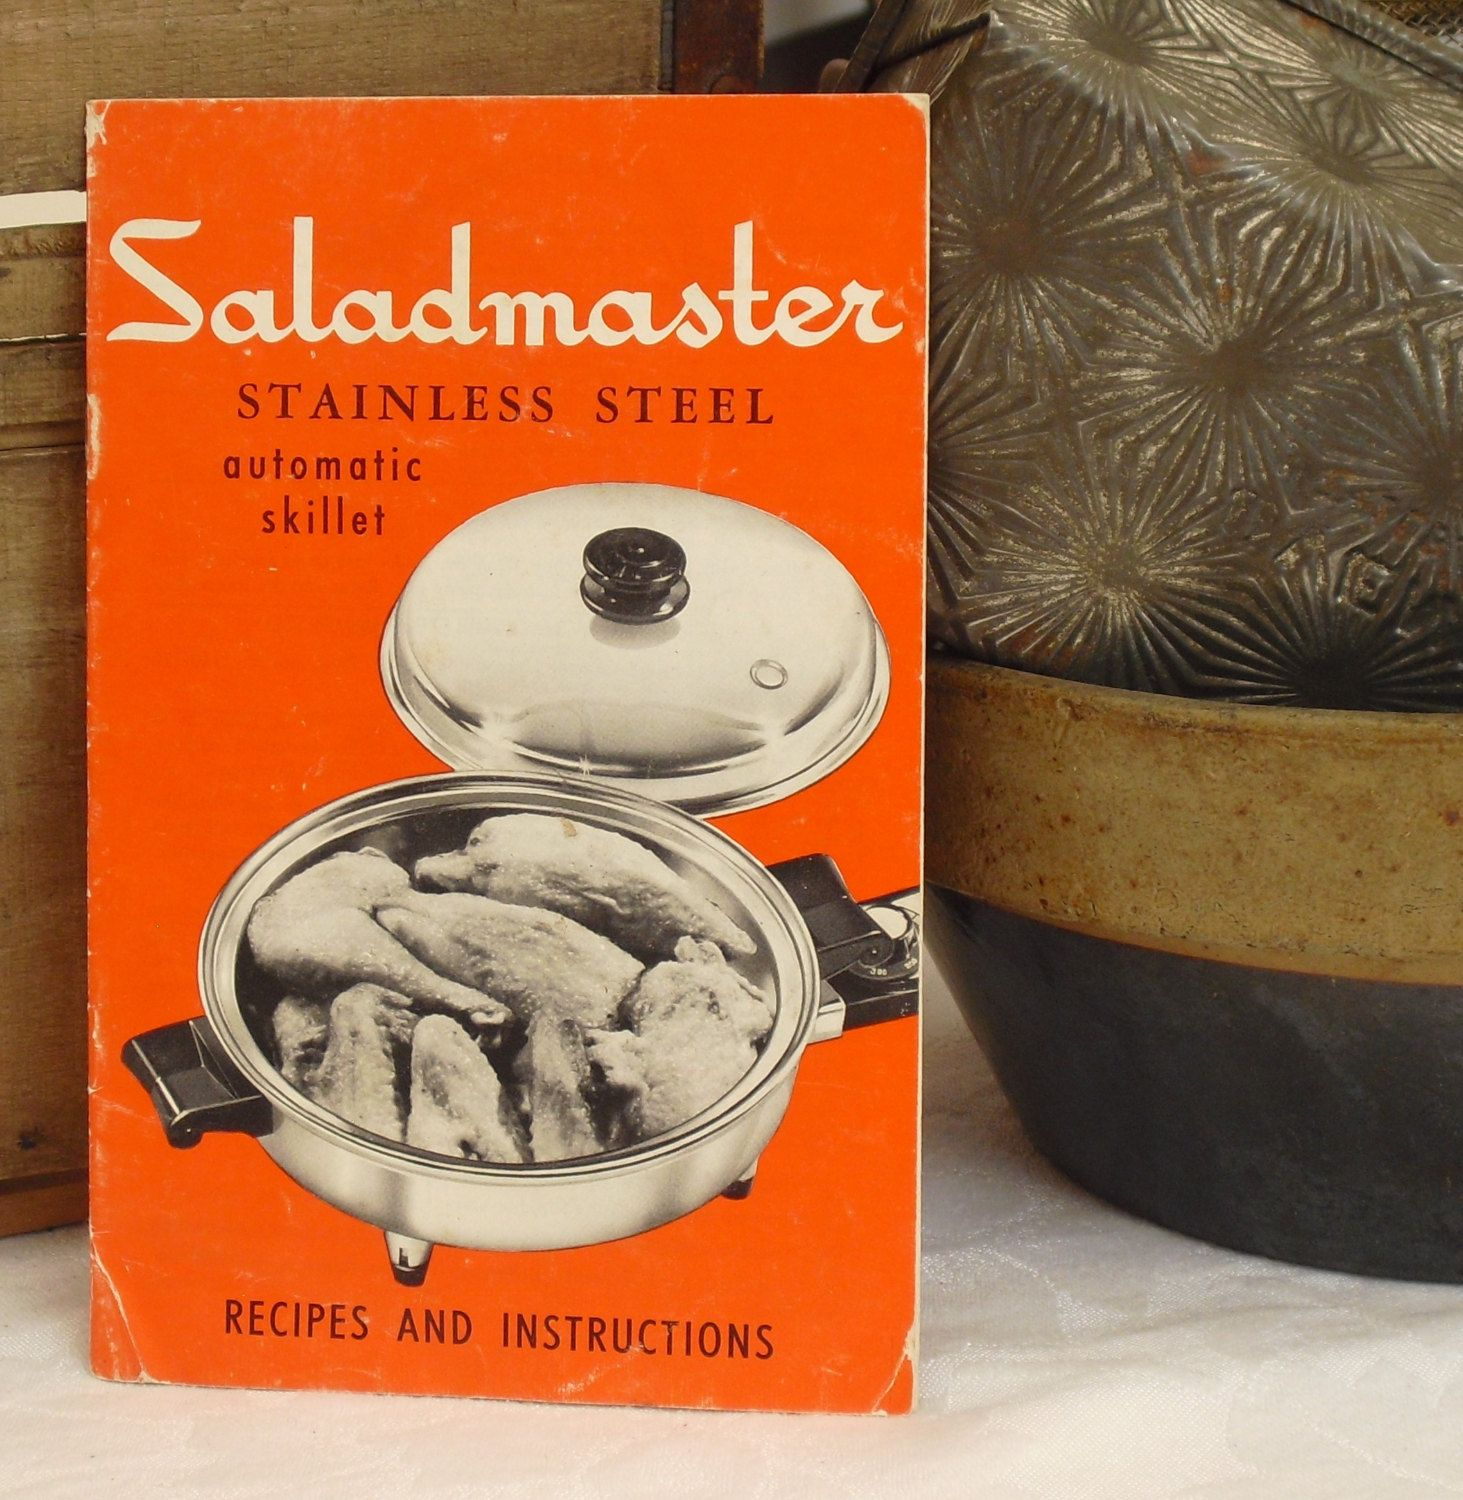 Vintage How To Book, Saladmaster Stainless Steel Cookware, Automatic Skillet,